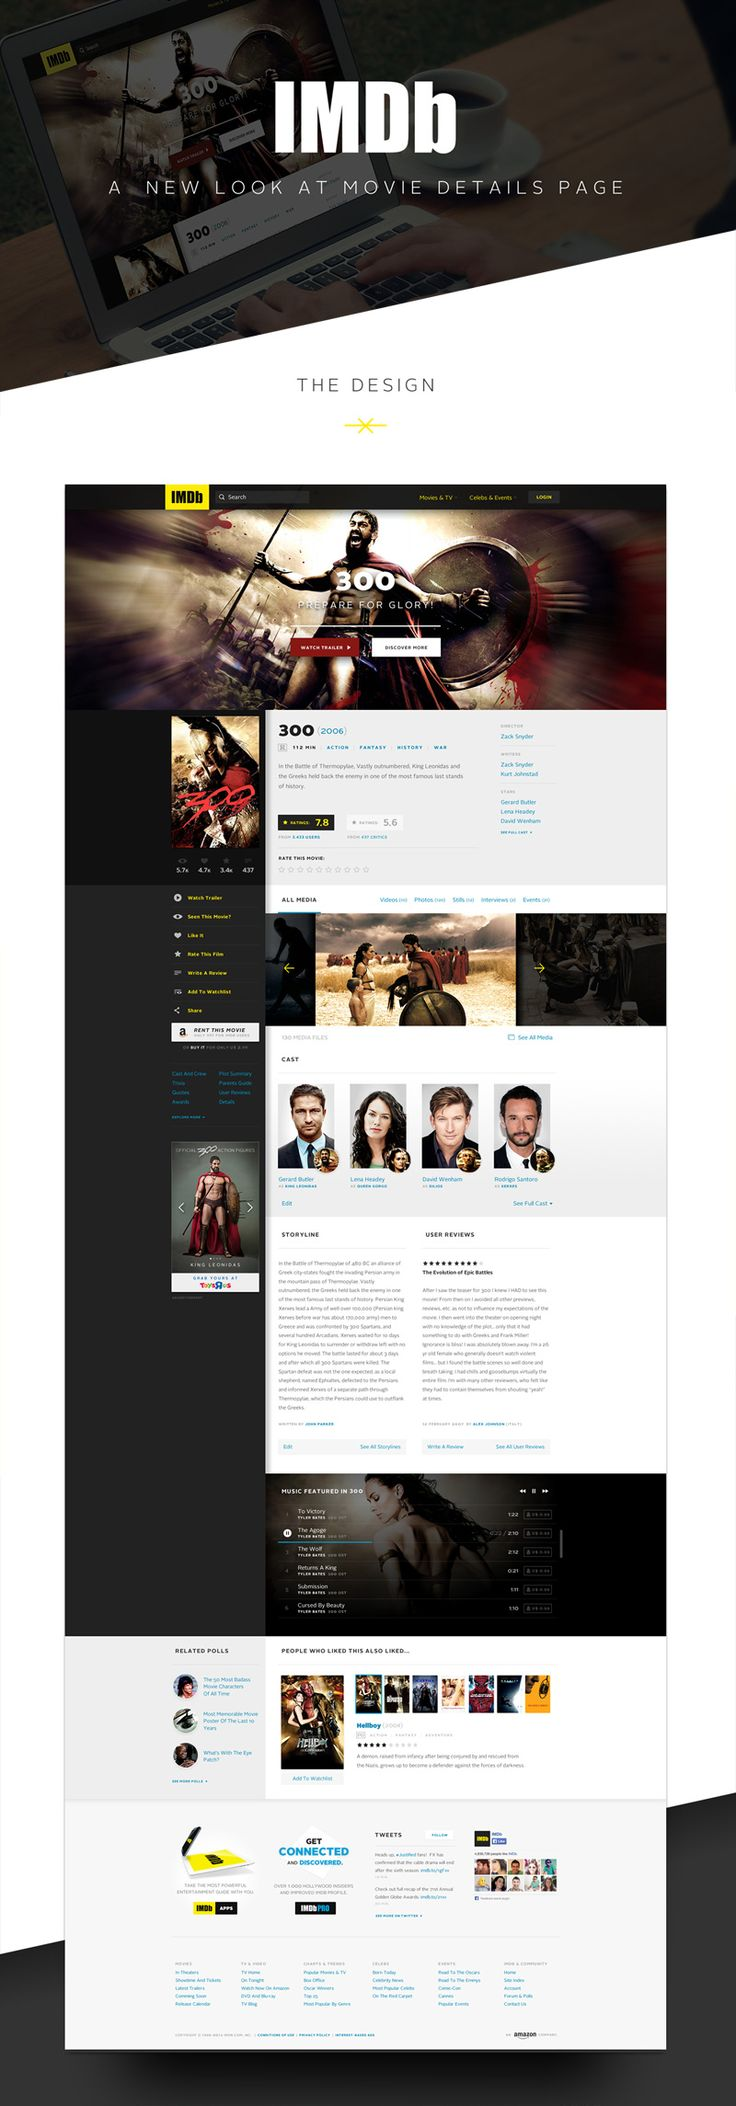 Info section (what you see after you click on it from the home page) hero image on top, literate posters with designer,client, release info under. Maybe even a trailer and synopsis